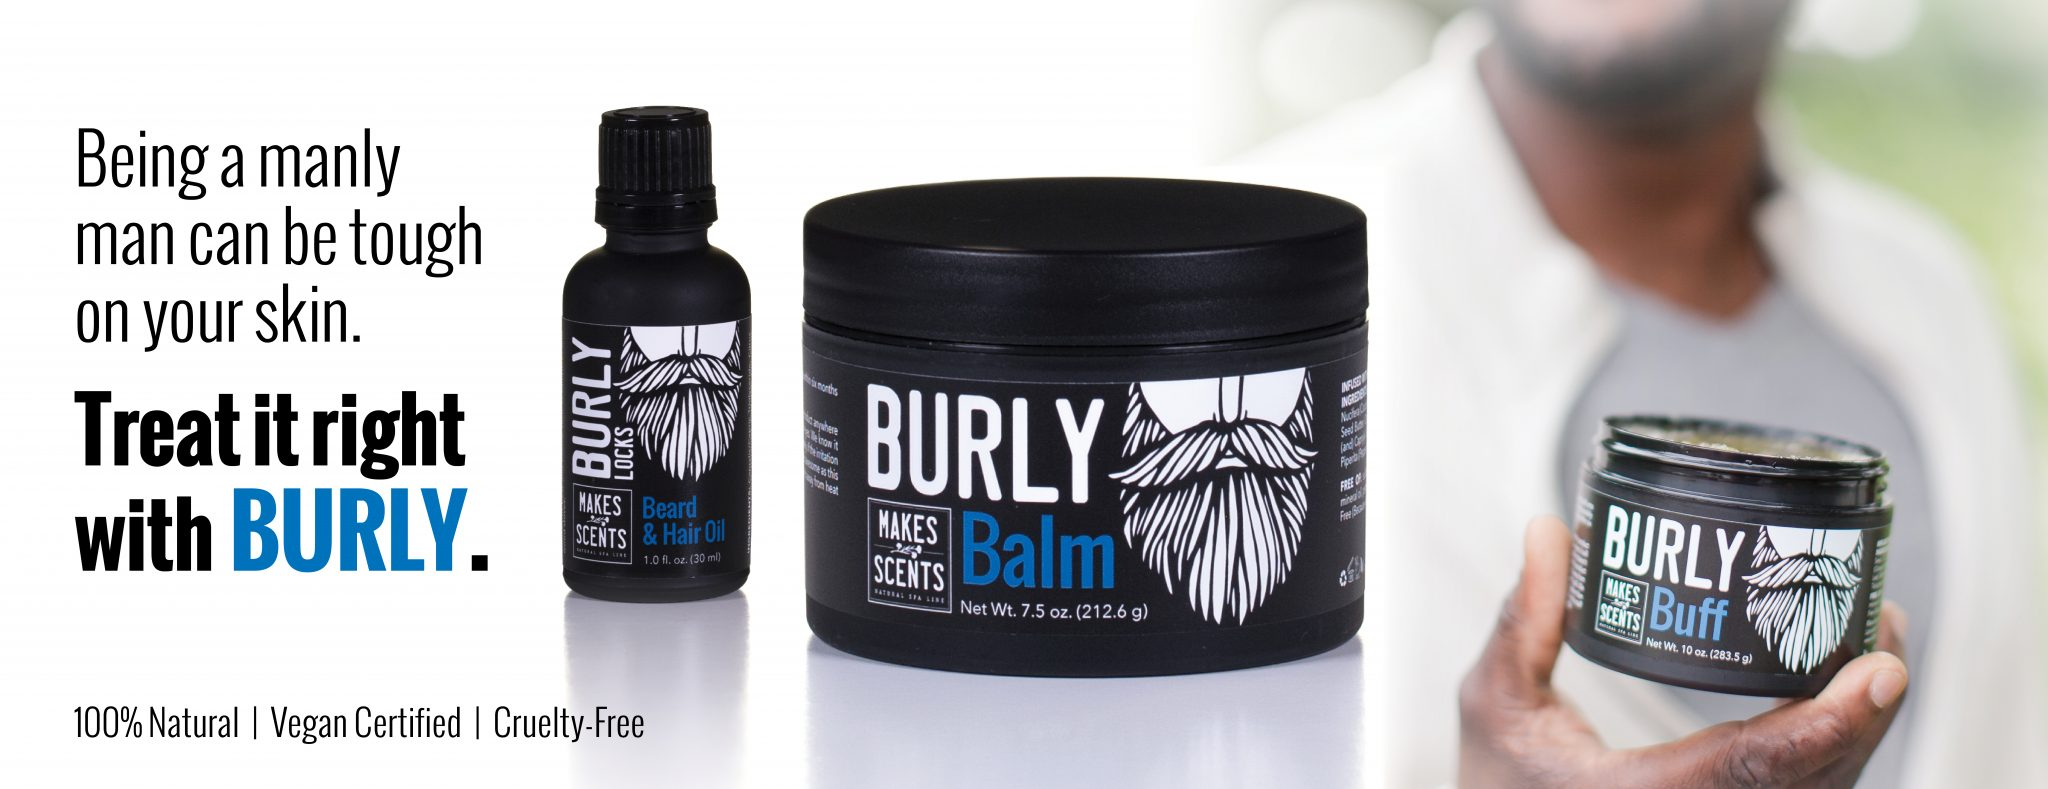 Burly - Men's Body Care - Vegan - Cruelty-Free - Makes Scents Natural Spa Line